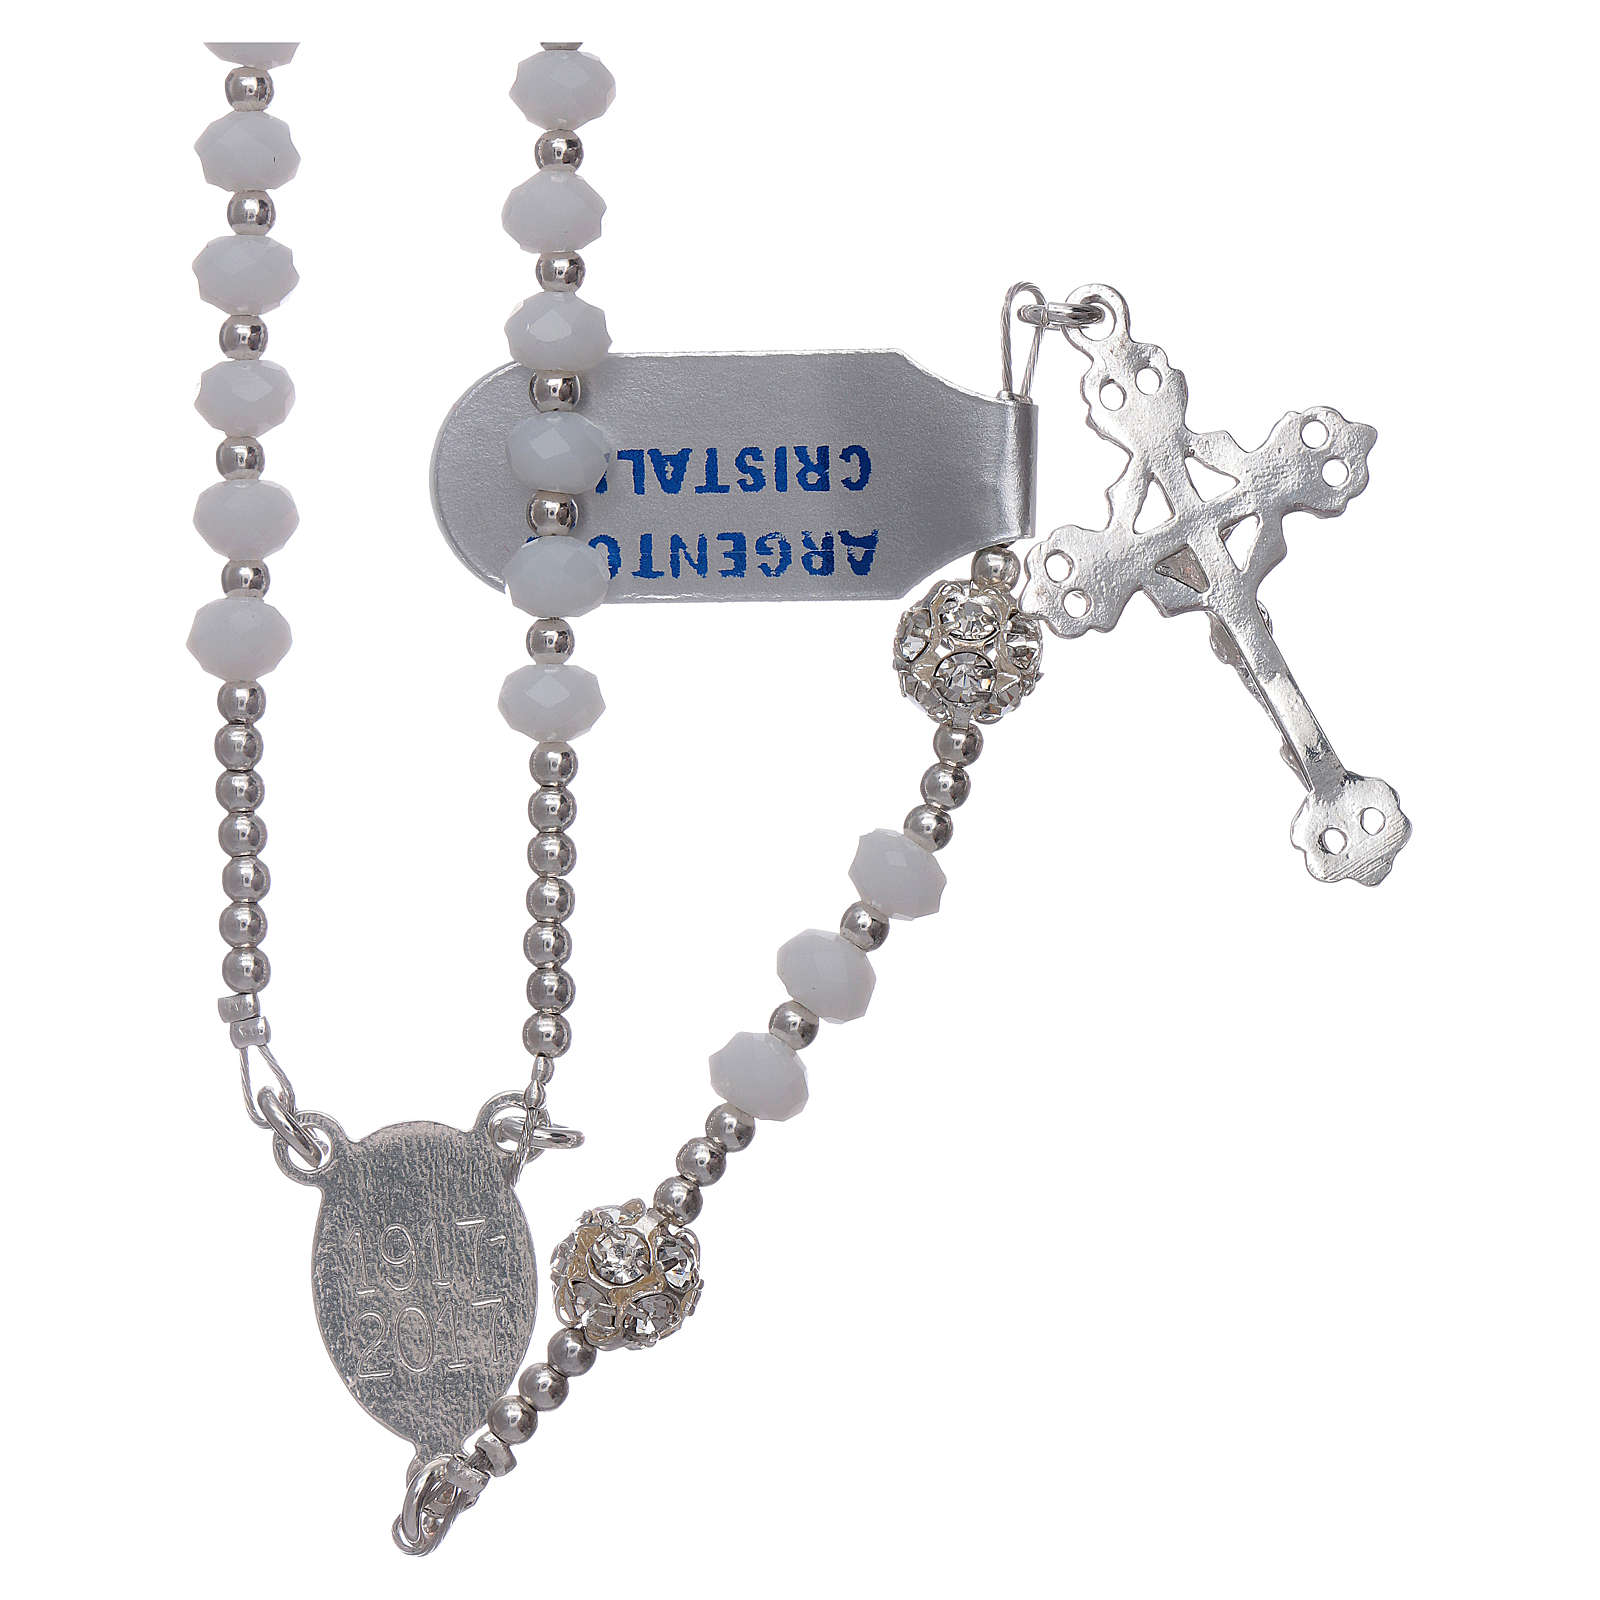 Rosary centenary Our Lady of Fatima's appearance in silver 4